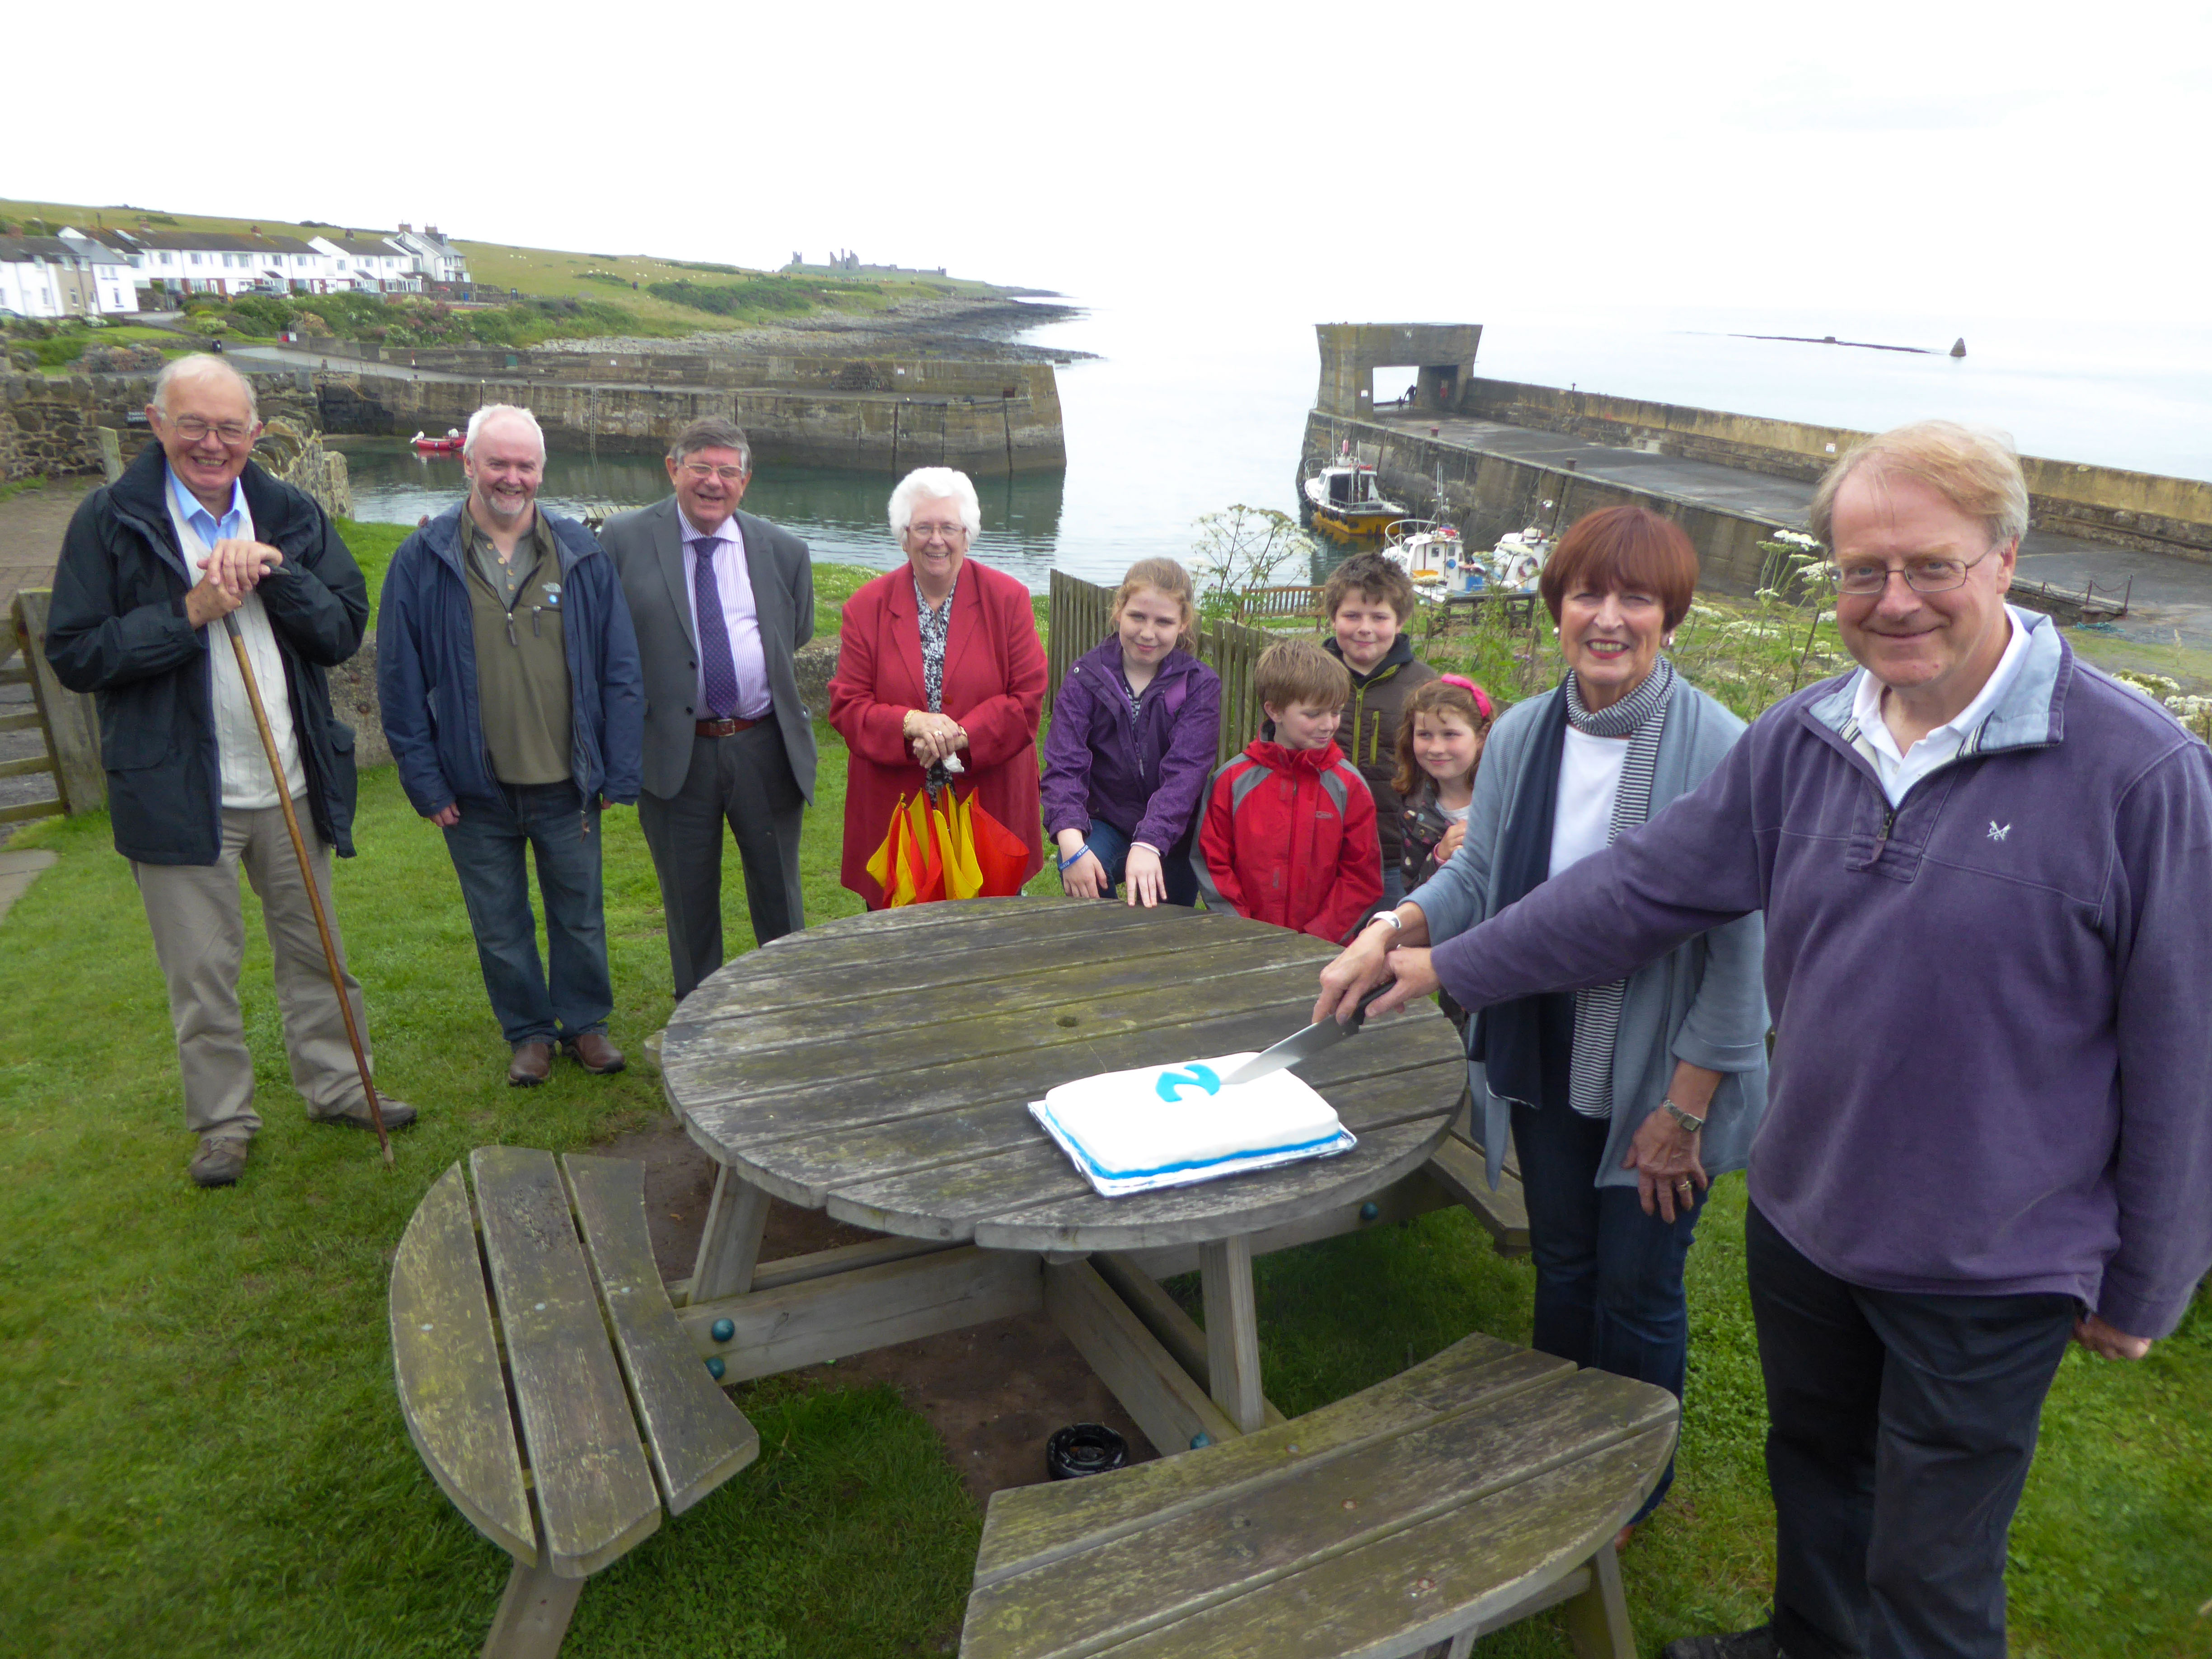 Celebrations for ten years of the Northumberland Coast Path